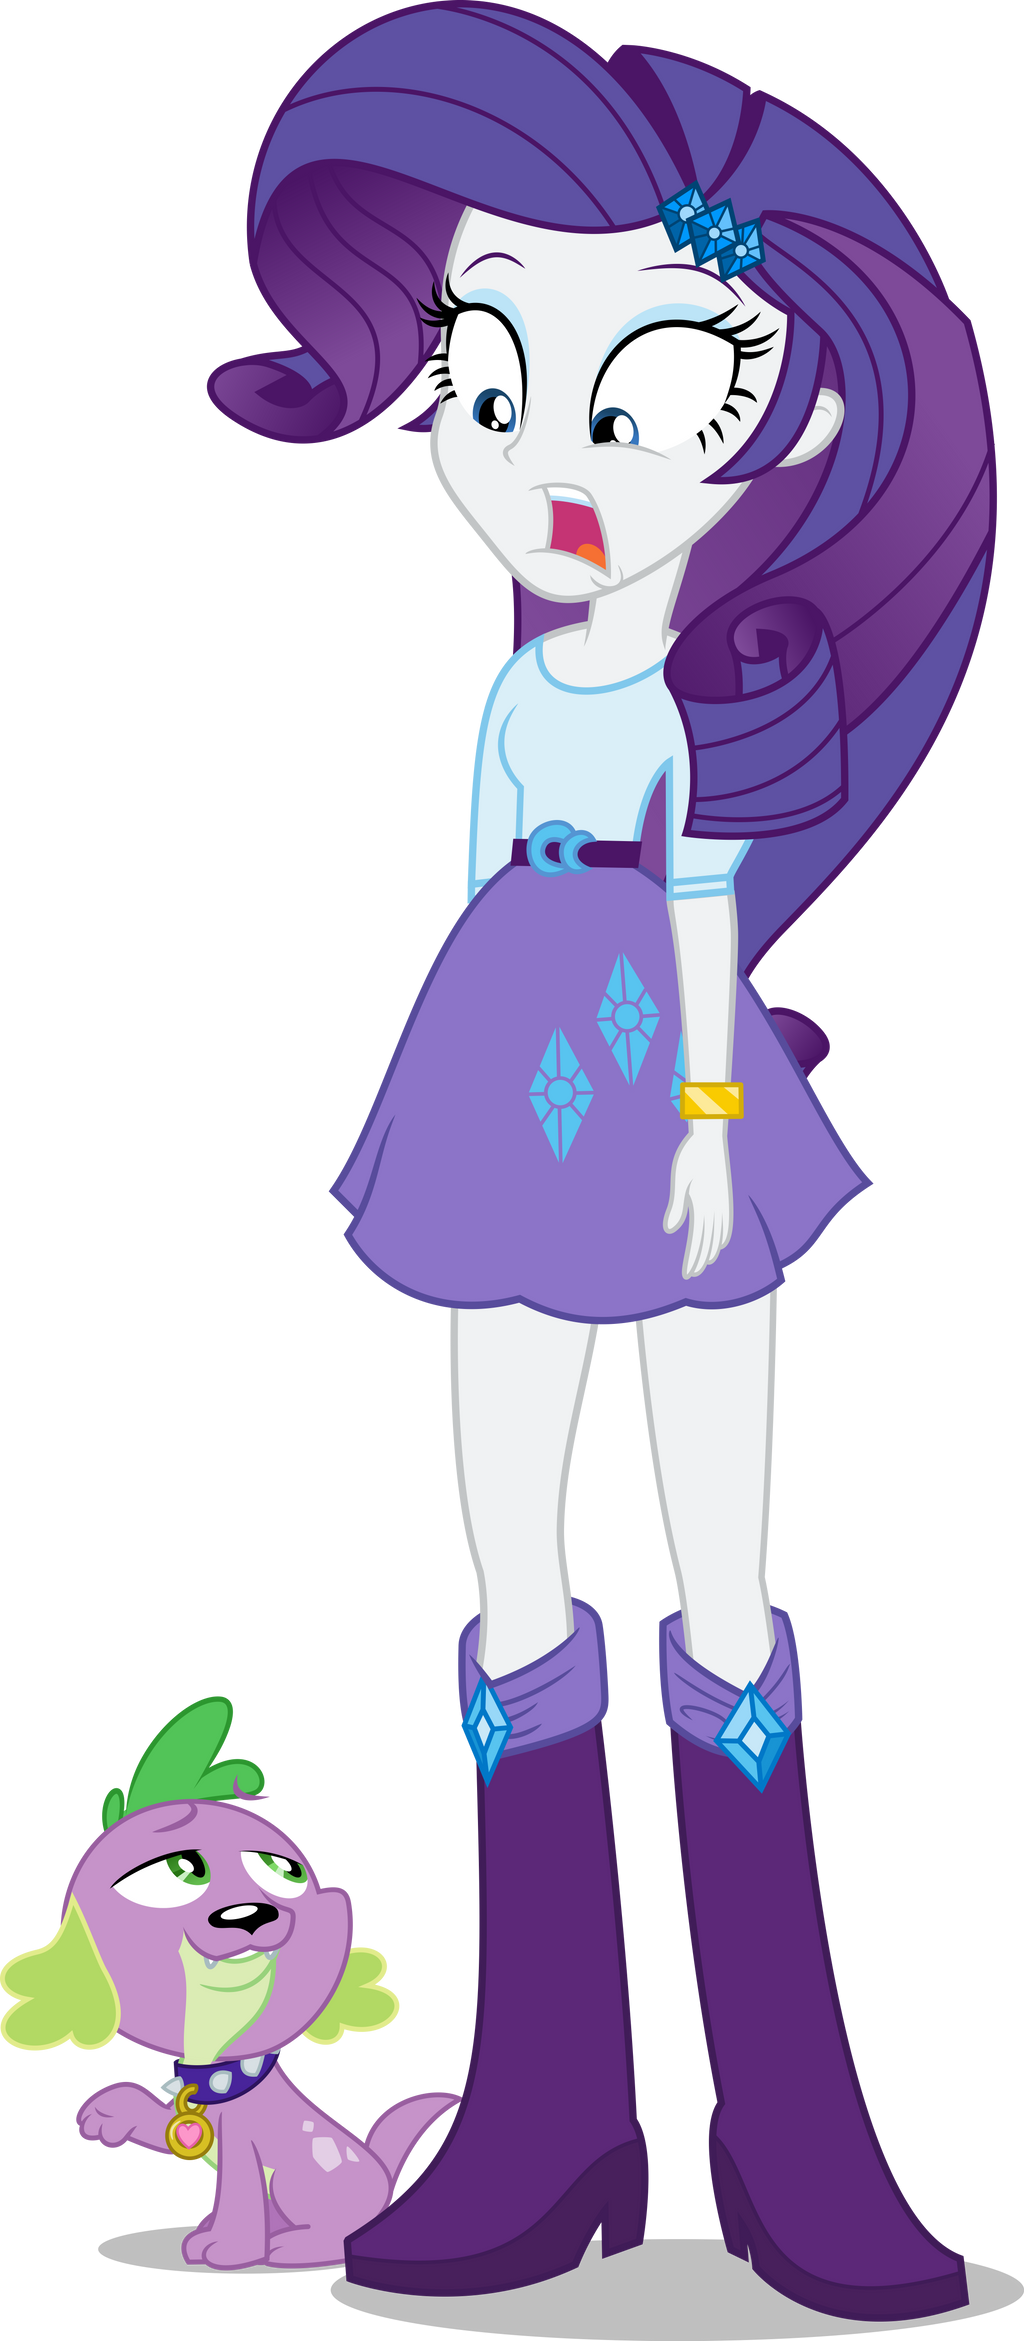 Equestria Girls - Rarity - Gah by Fangz17 on DeviantArt